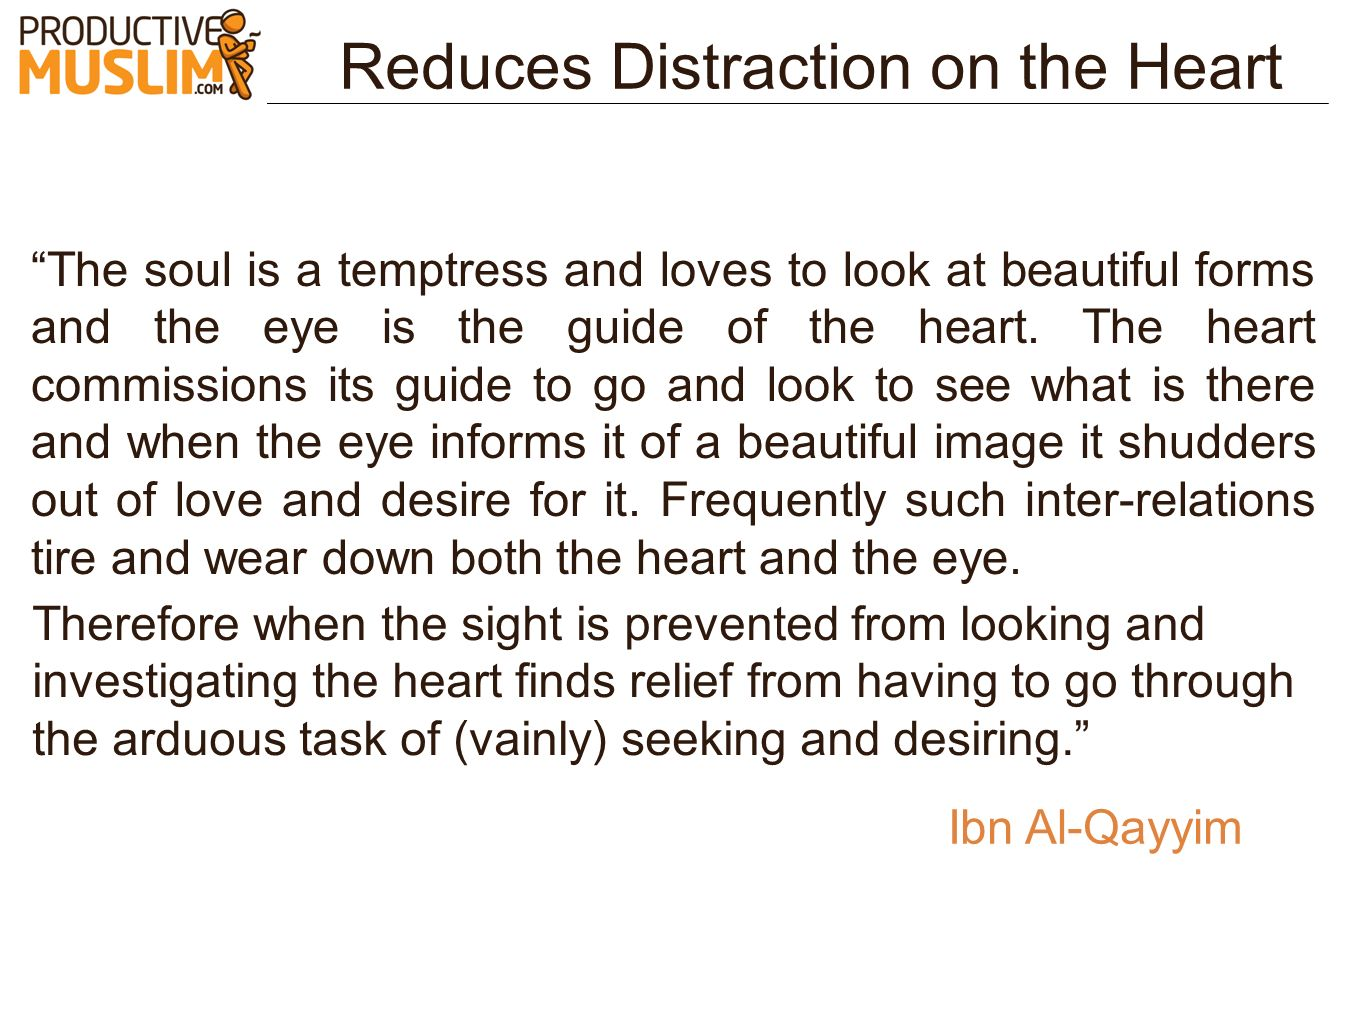 Reduces Distraction on the Heart